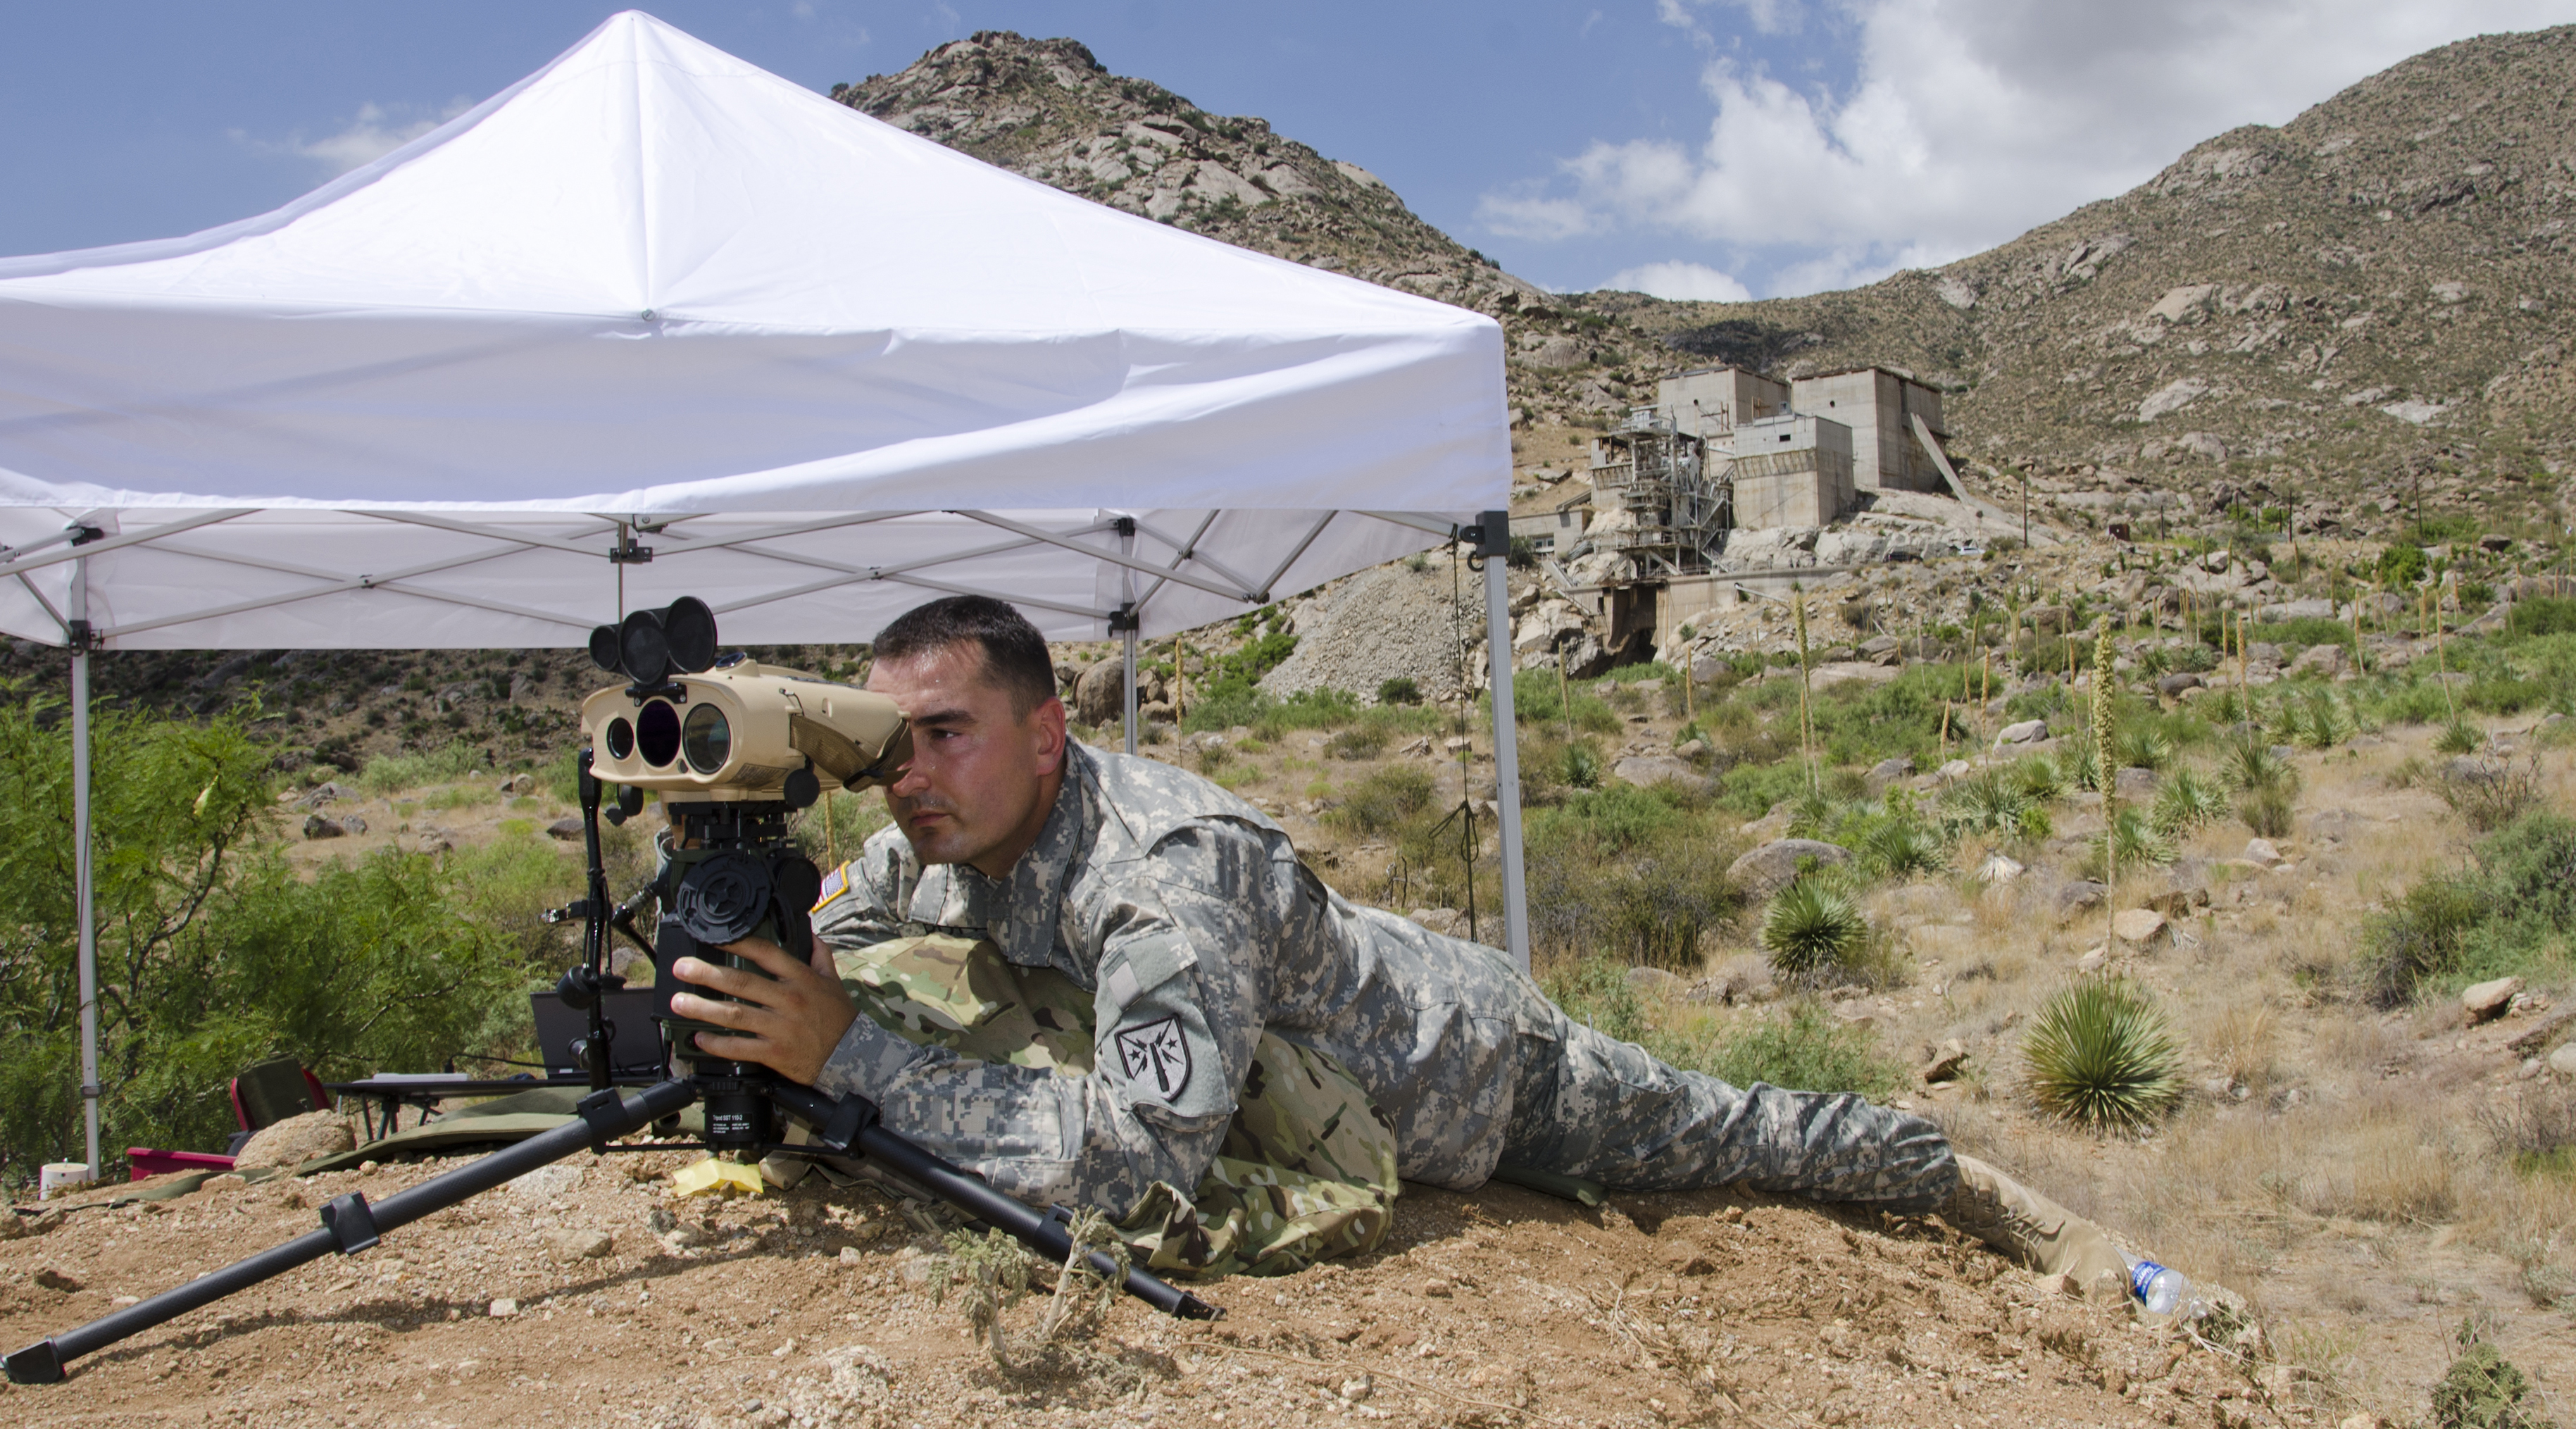 Sgt. 1st Class Justin Rotti, a combat developer for the U.S. Army Training and Doctrine Command Fire Cell, tests a developmental handheld precision targeting device for the Rapid Equipping Force in July 2014 at White Sands Missile Range, New Mexico. The device allows Soldiers to engage targets with precision munitions and provide digital connectivity to related units. (Photo by John Hamilton / White Sands Missile Range Public Affairs)